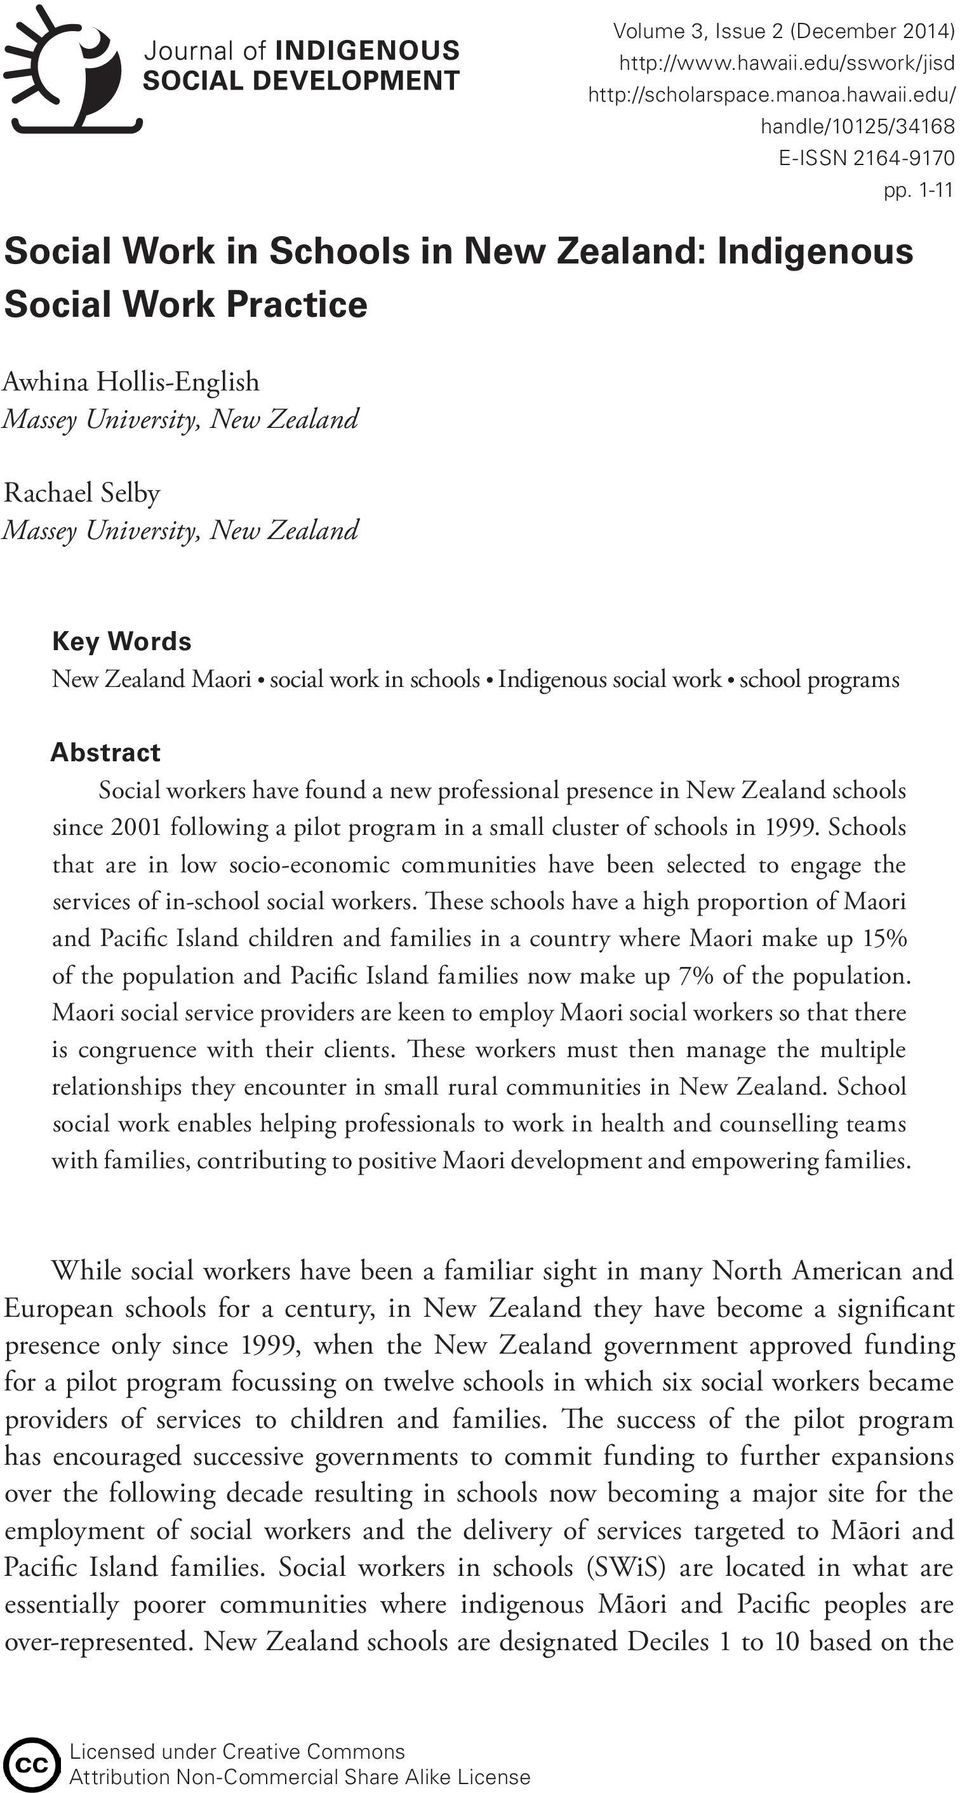 edu/ handle/10125/34168 E-ISSN 2164-9170 Social Work in Schools in New Zealand: Indigenous Social Work Practice Awhina Hollis-English Massey University, New Zealand pp.